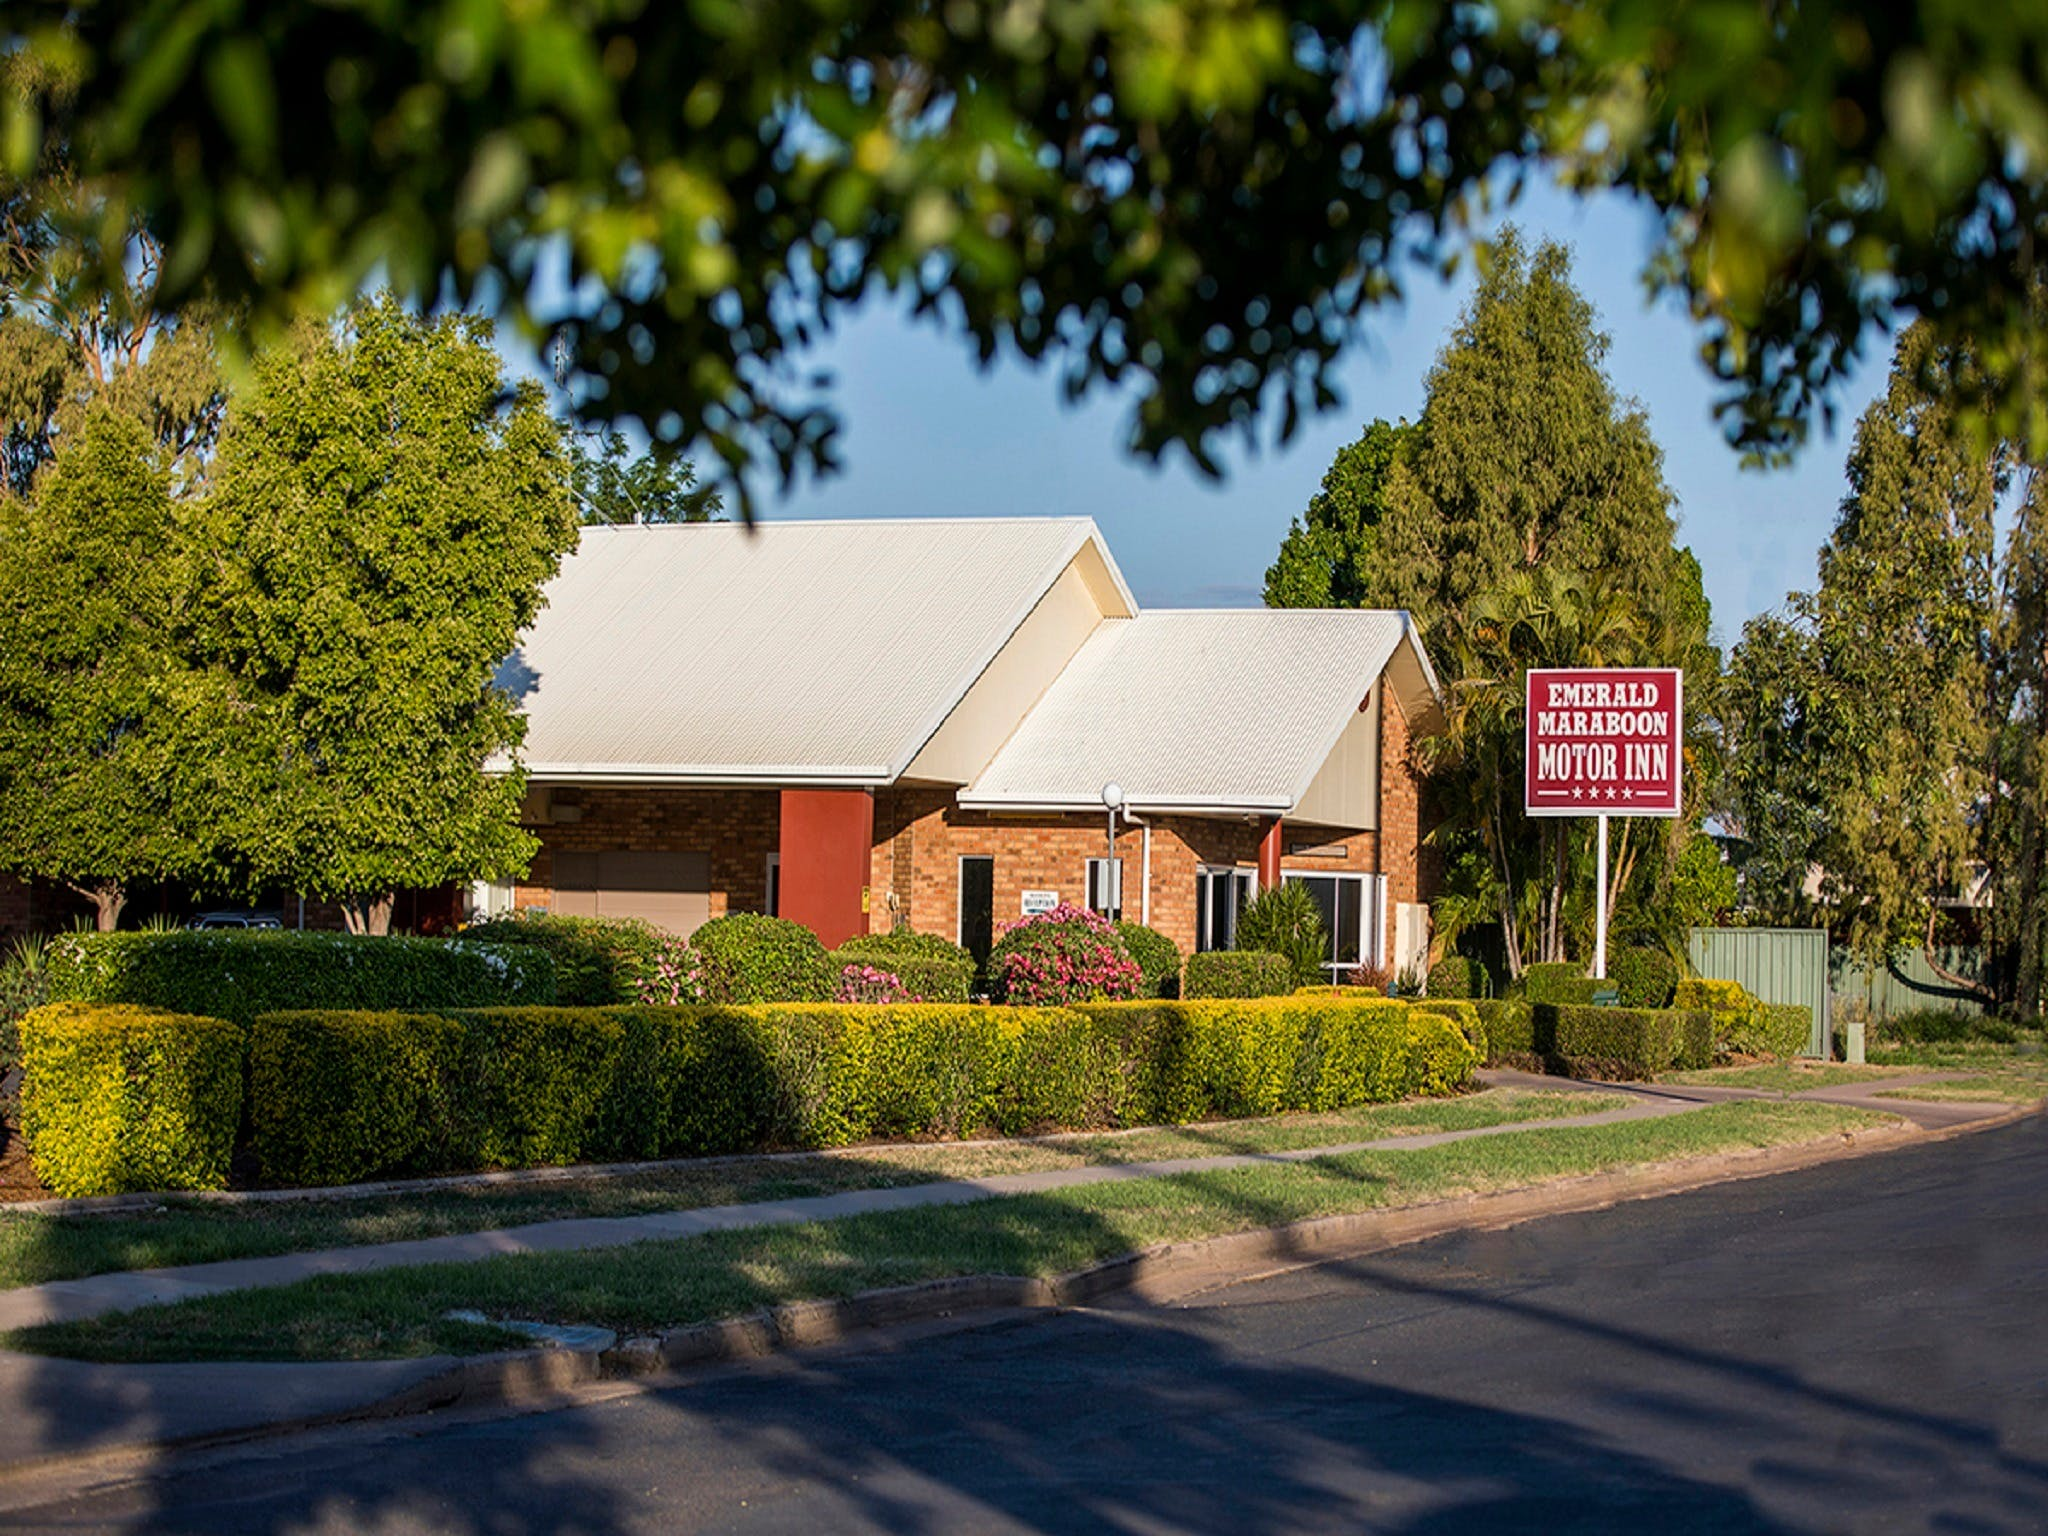 Emerald Maraboon Motor Inn - Accommodation Nelson Bay